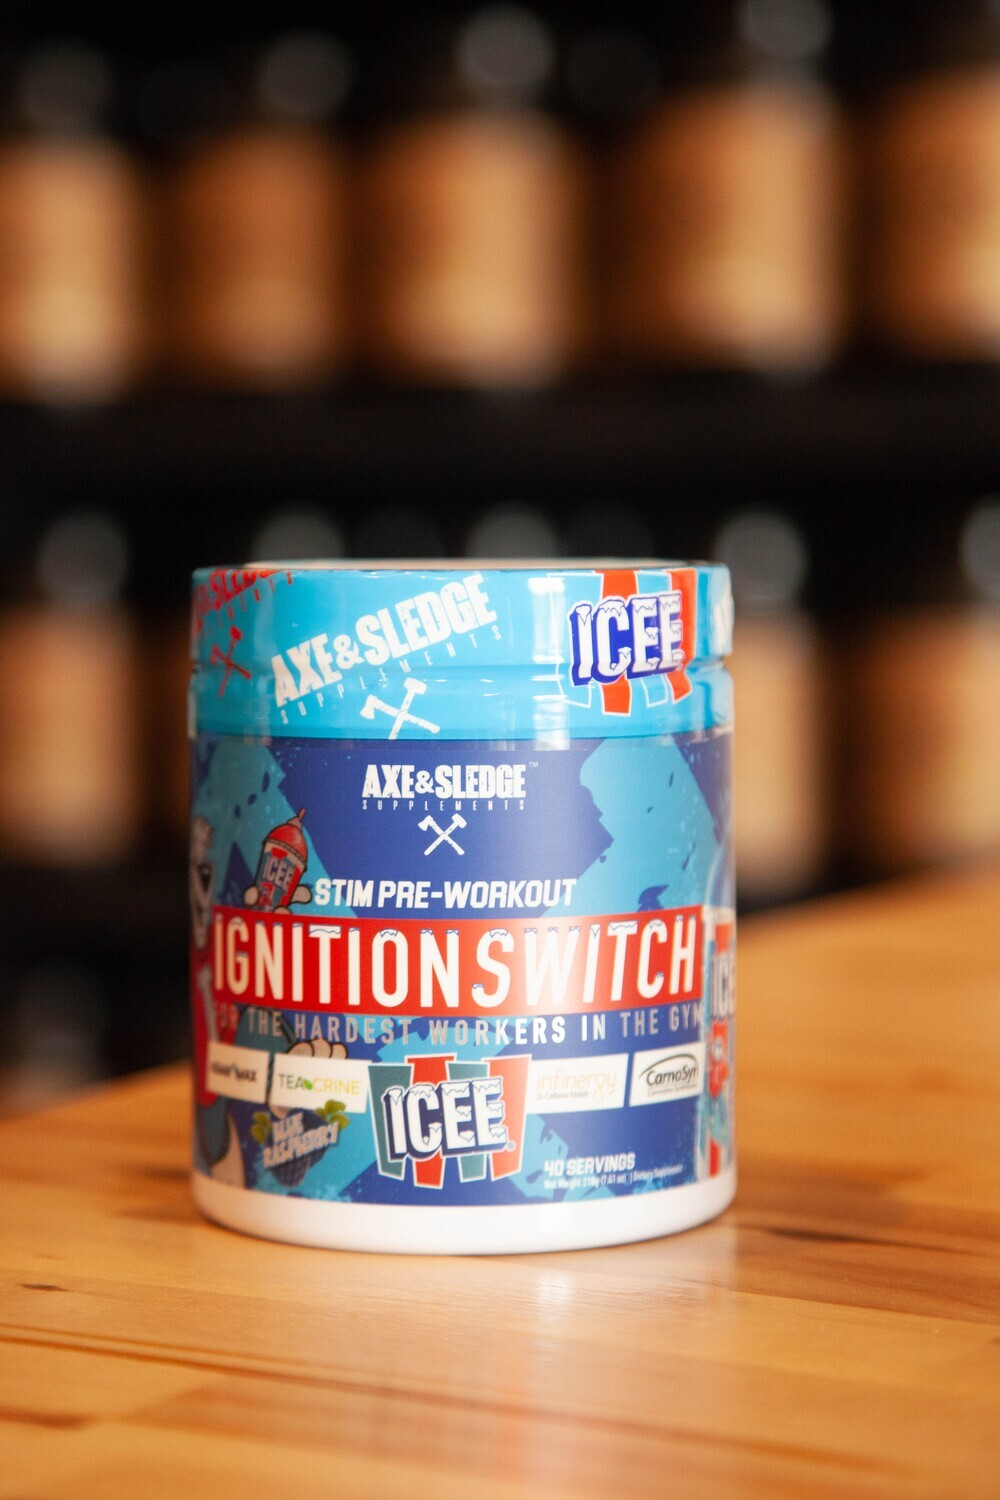 Axe & Sledge Ignition Switch (Blue ICEE)